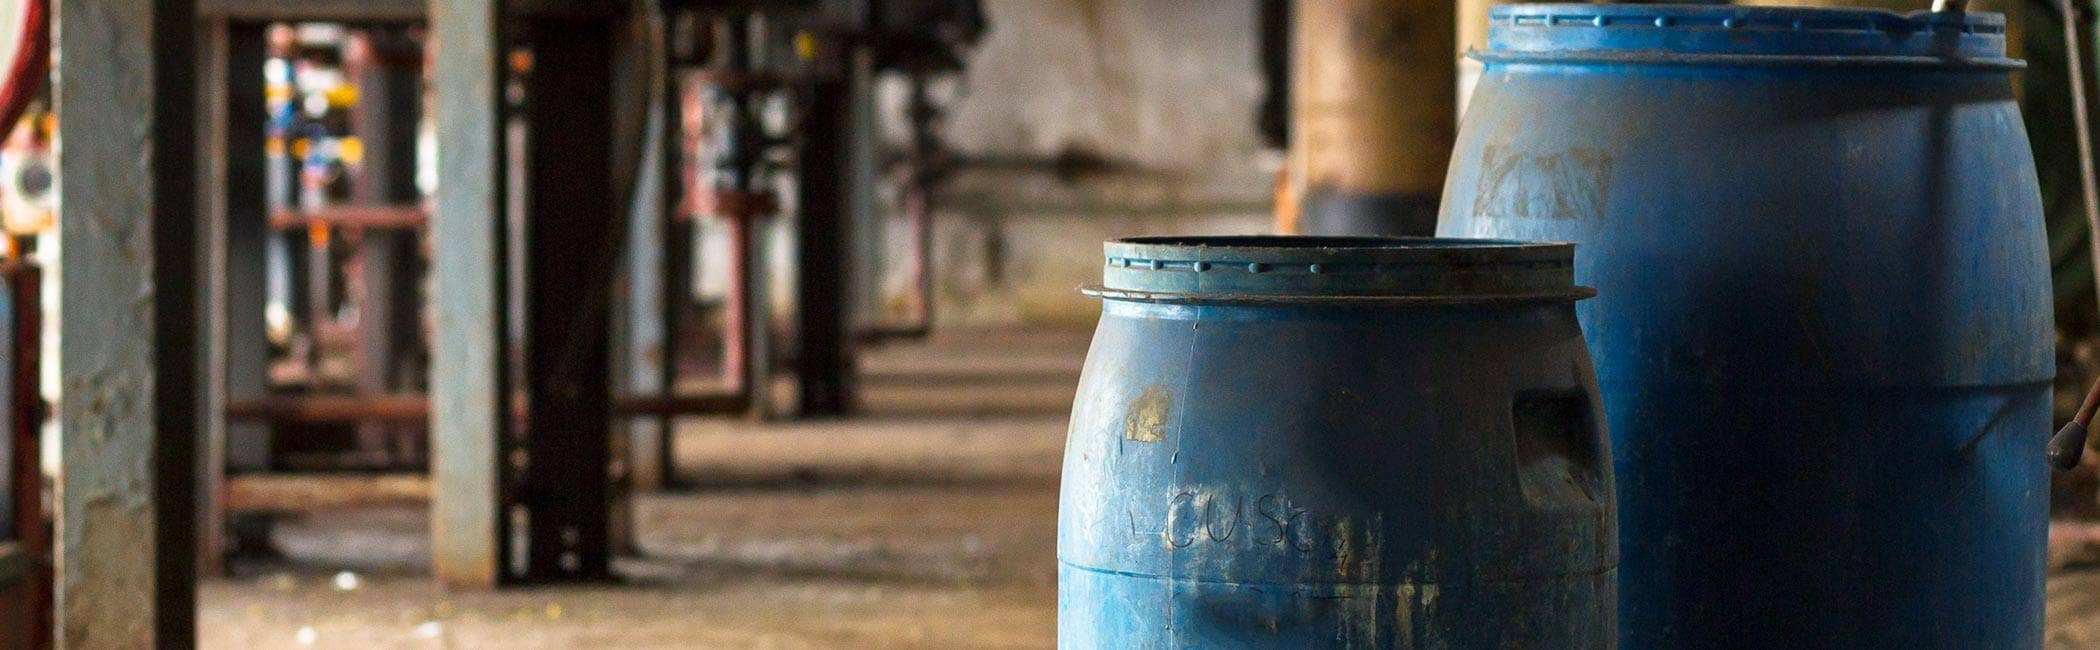 Guide to Storing, Handling & Disposing Corrosive Chemicals